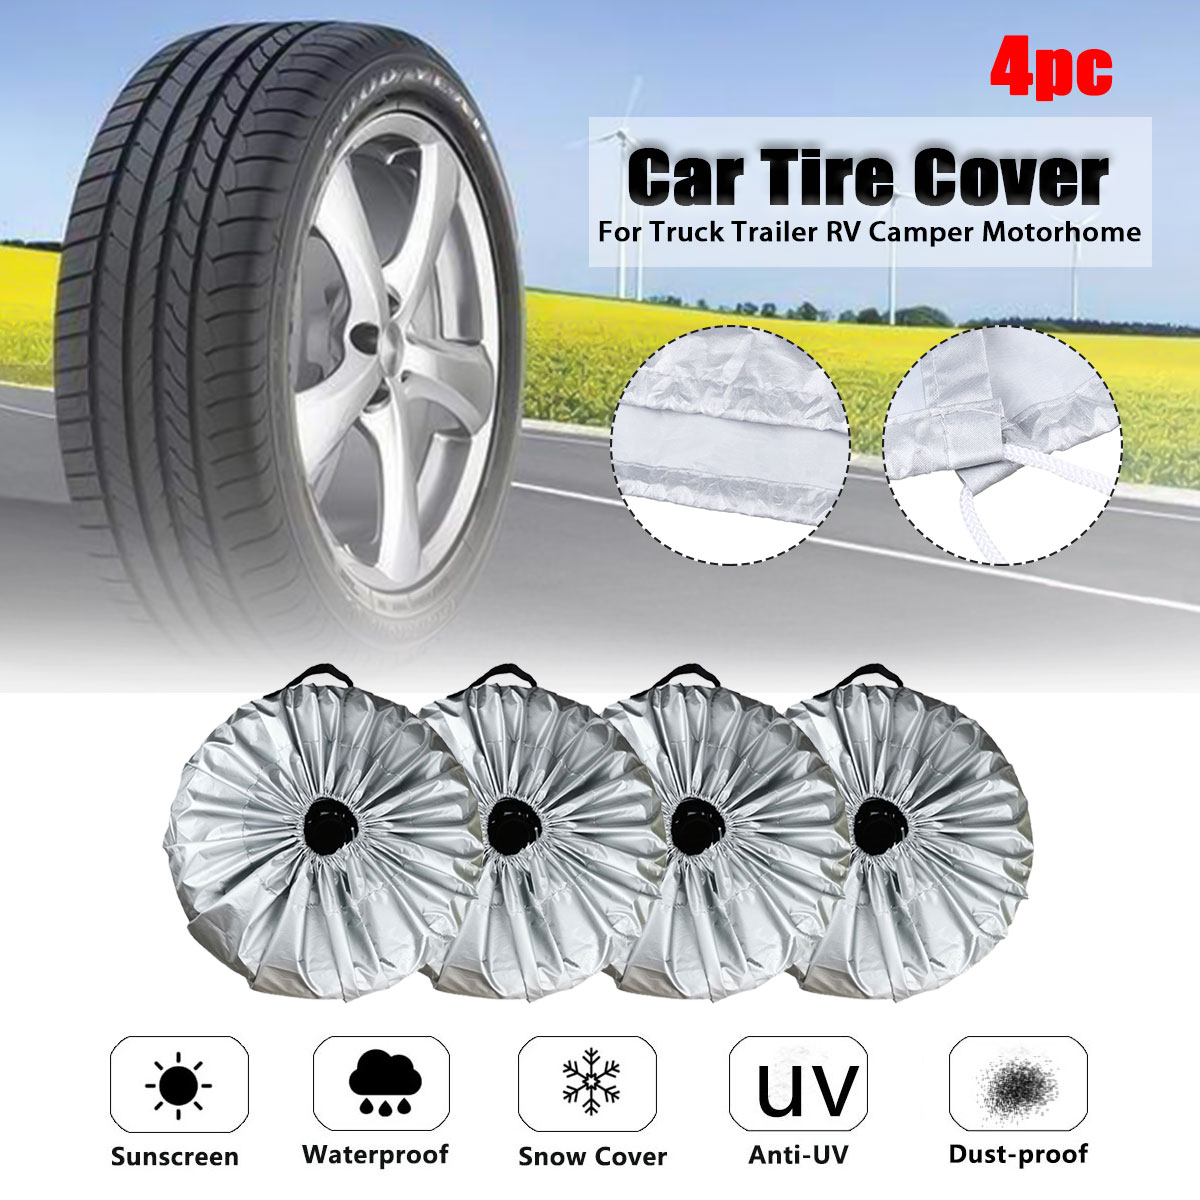 4X Universal 210D Car SUV Tire Cover Case Spare Tires Wheel Bag Tyre Spare Storage Protection Cover Tote Polyester 4 Season